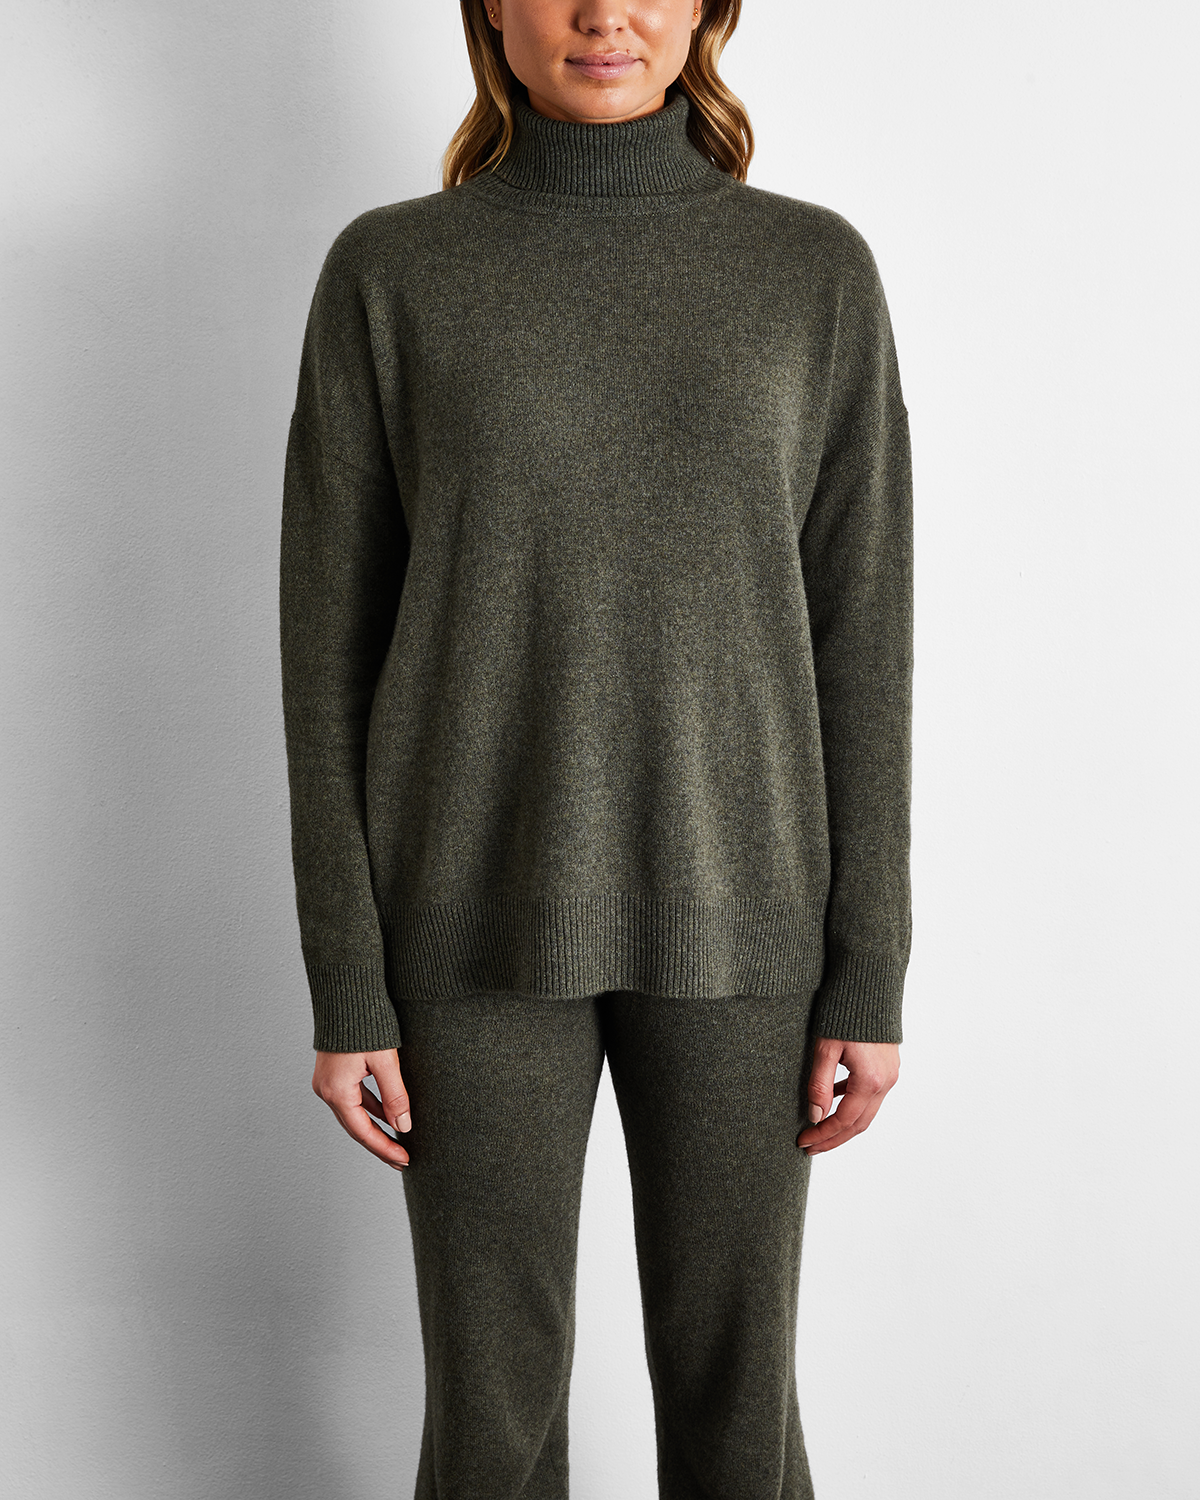 100% Cashmere Sweater in Olive